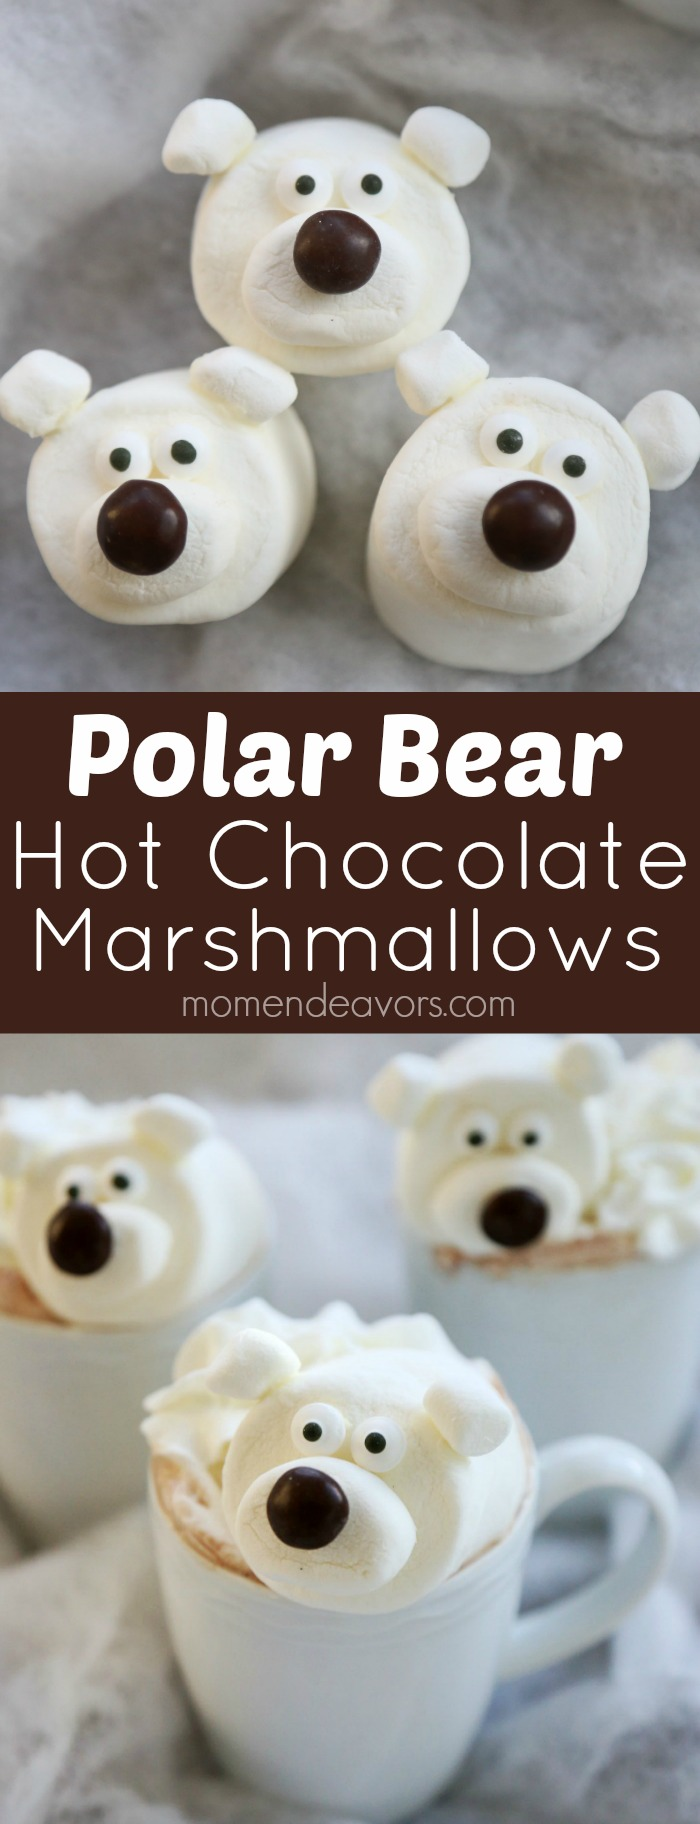 Polar Bear Hot Chocolate Marshmallows